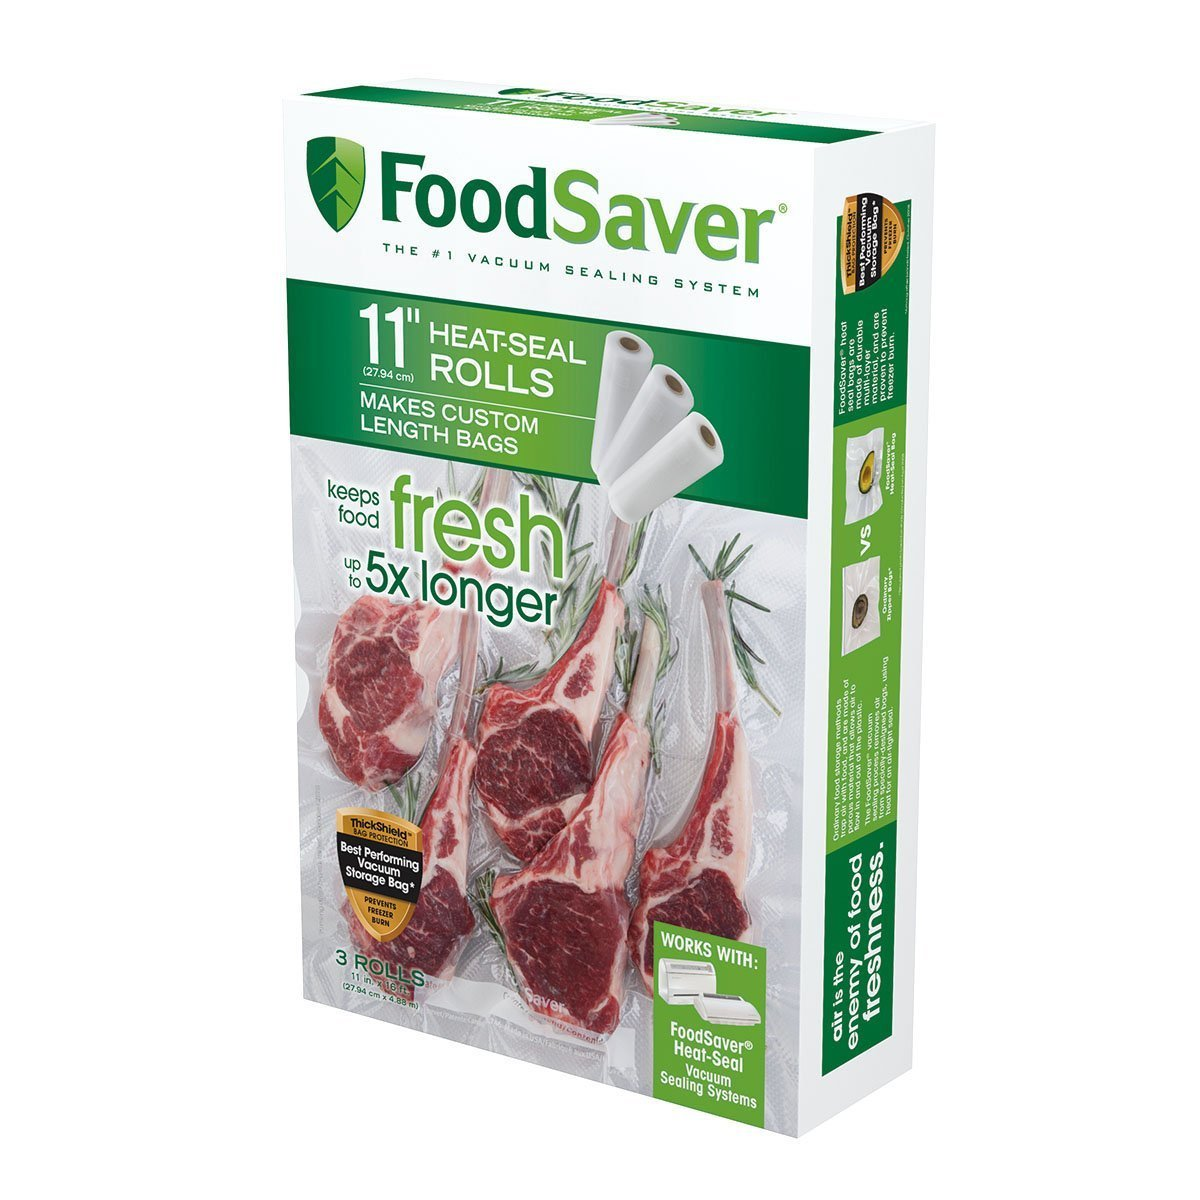 FoodSaver 11'' Roll (6 Rolls) by FoodSaver (Image #1)